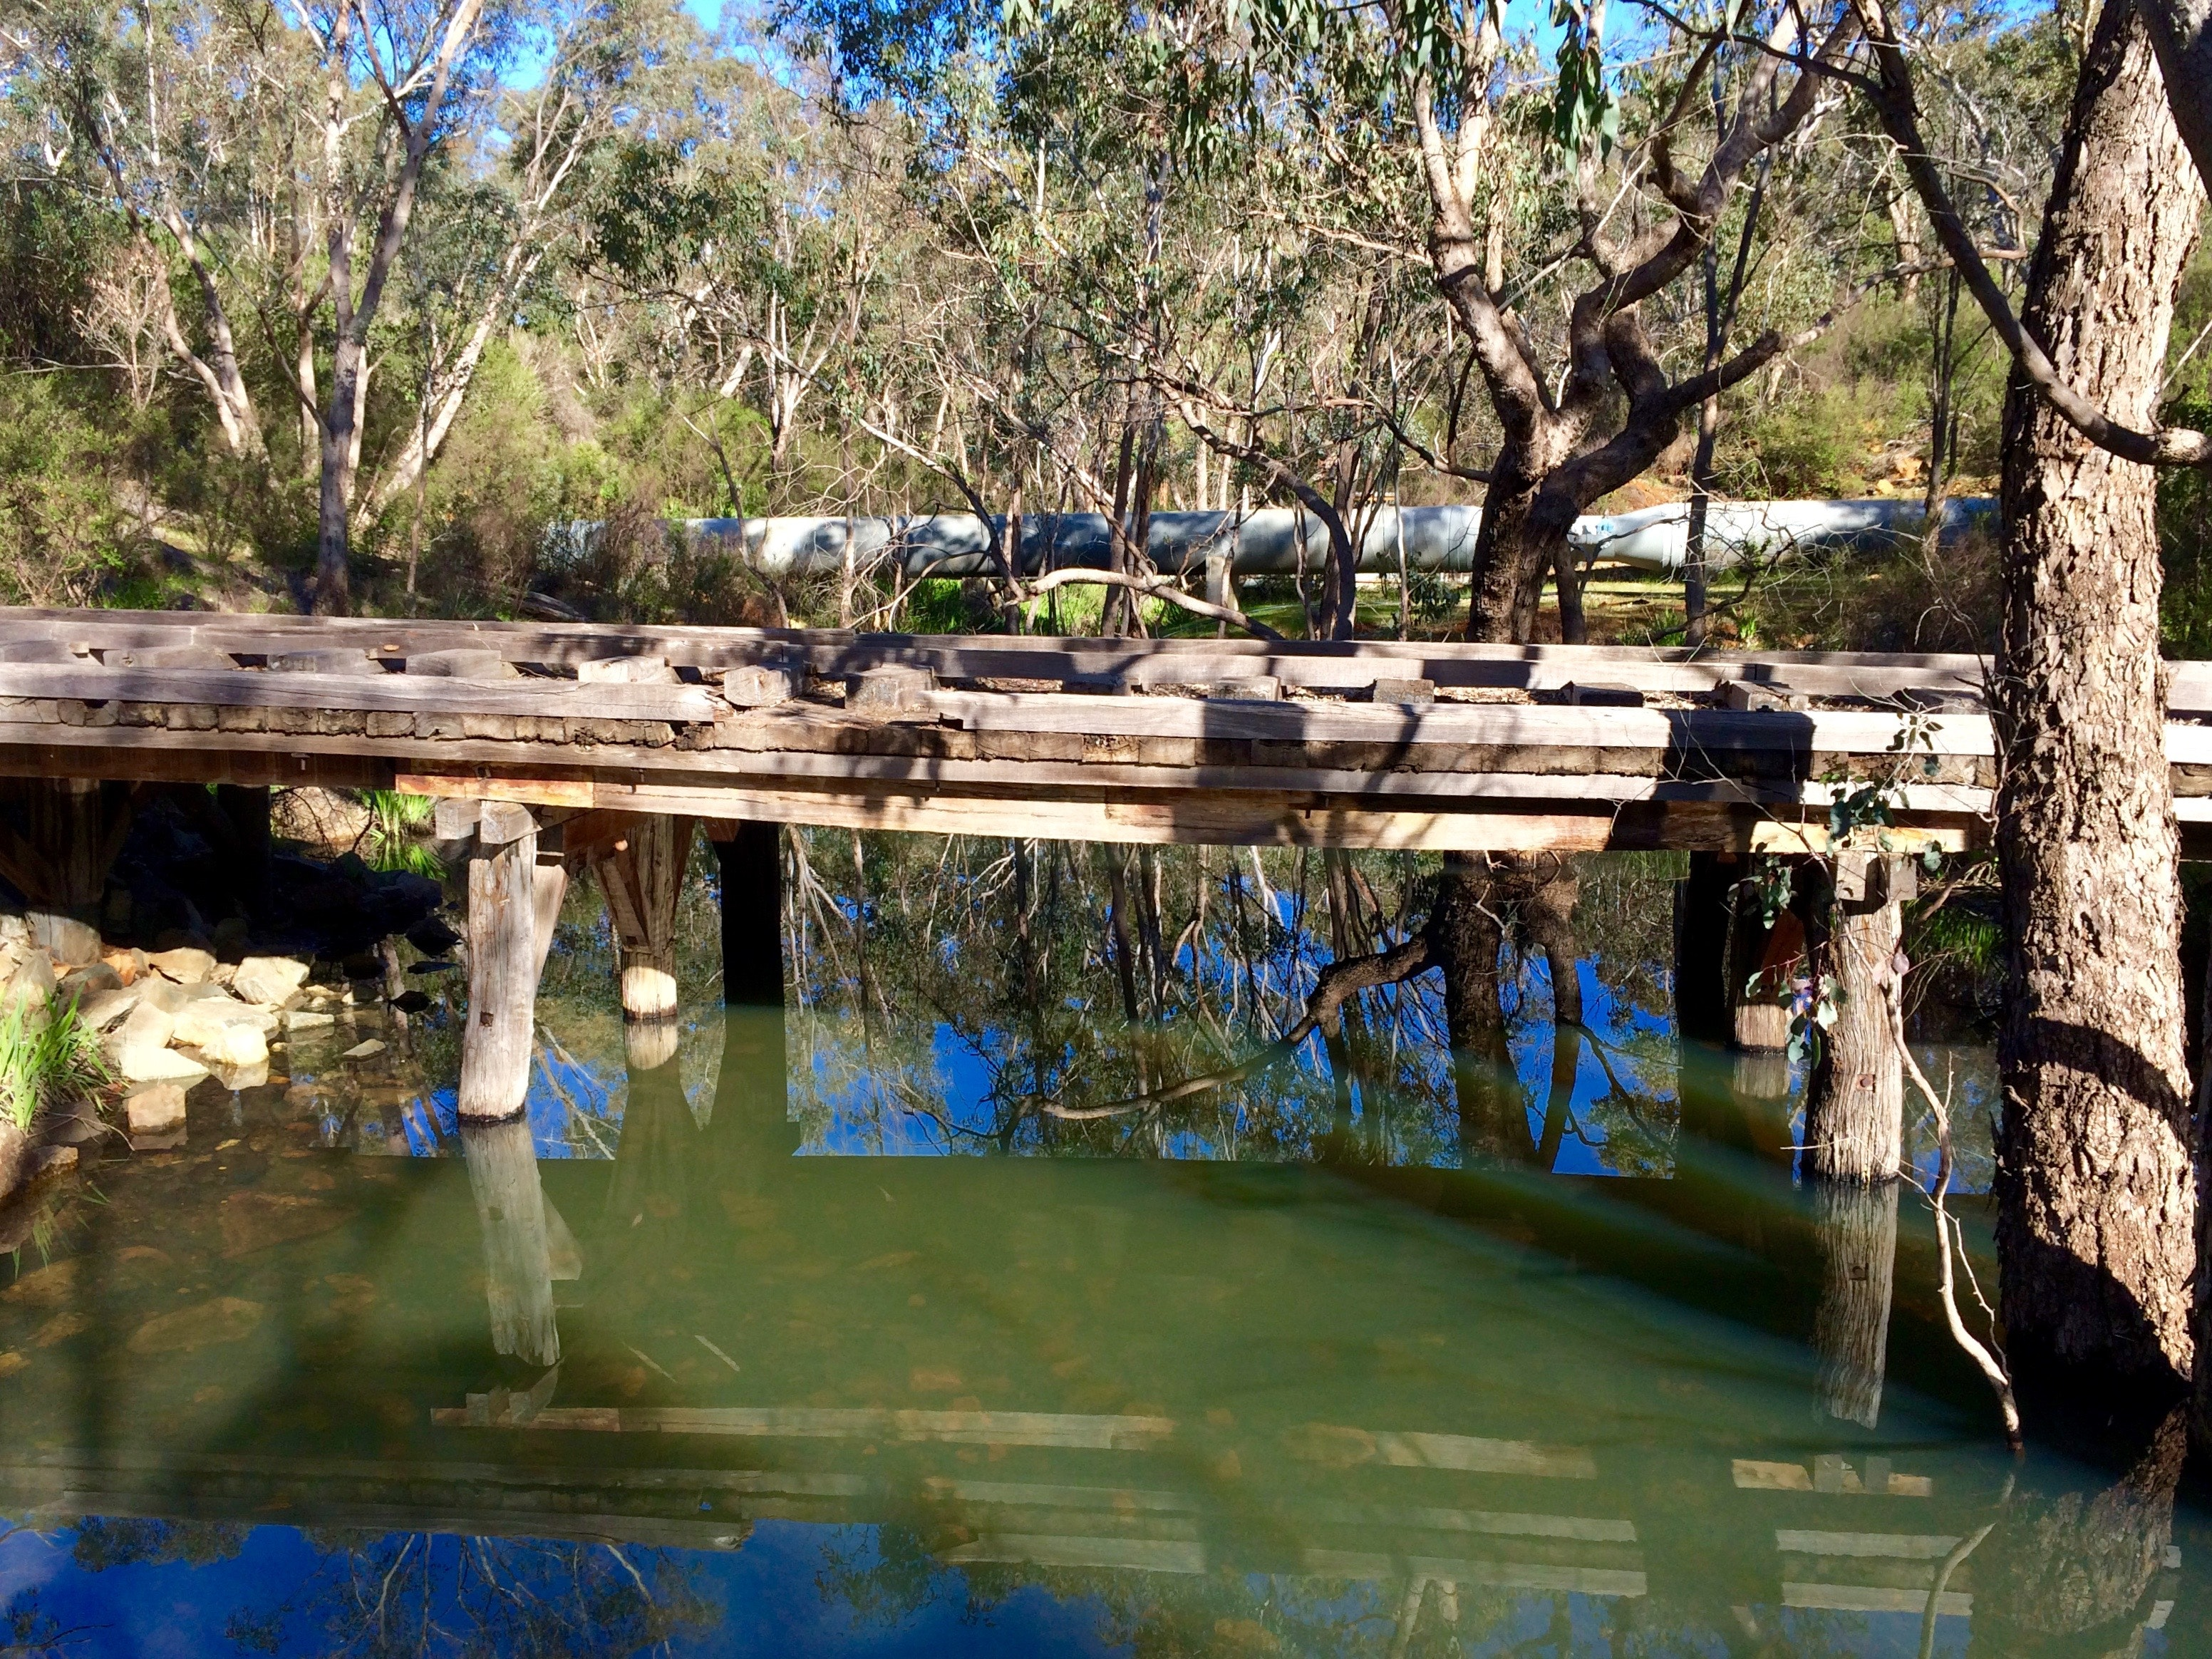 Oldest all-wooden bridge in Australia (Mason & Bird)